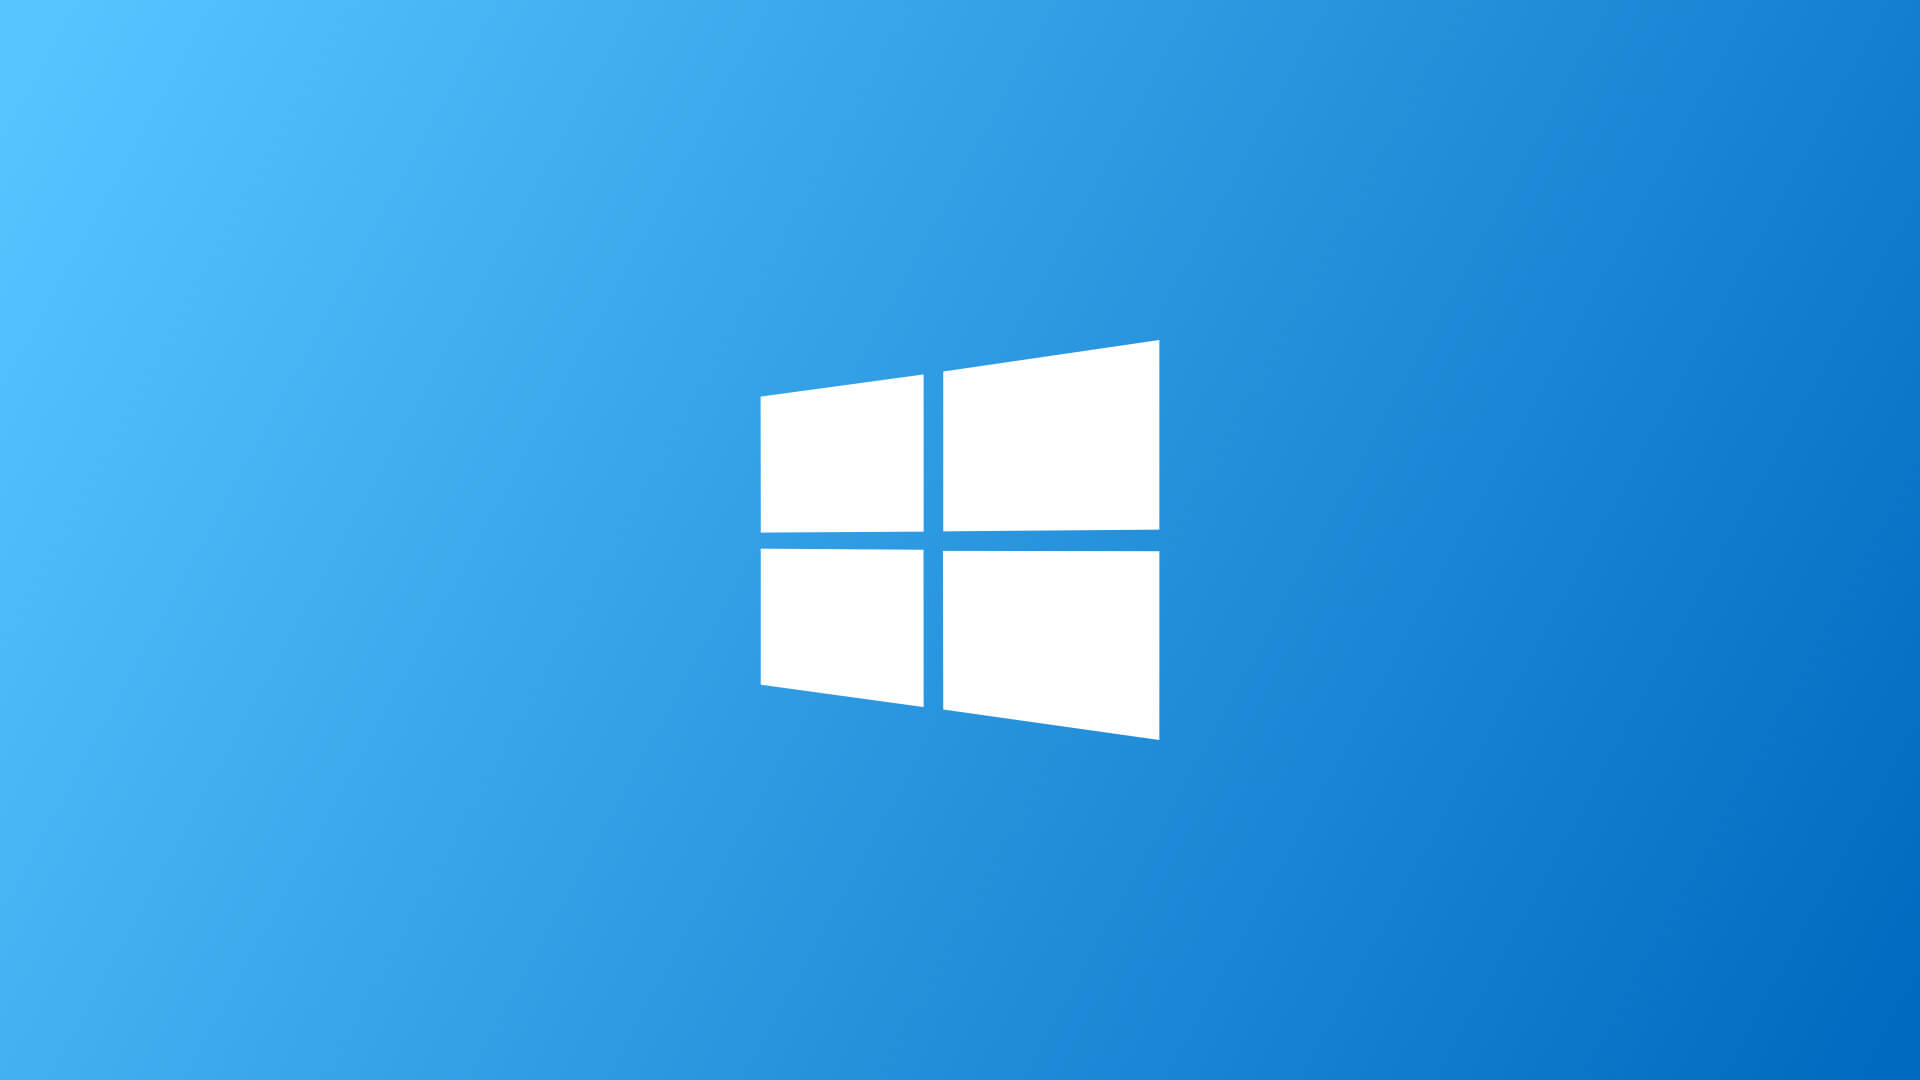 Télécharger l'image ISO de Windows 10, Windows 8.1 ou Windows 7